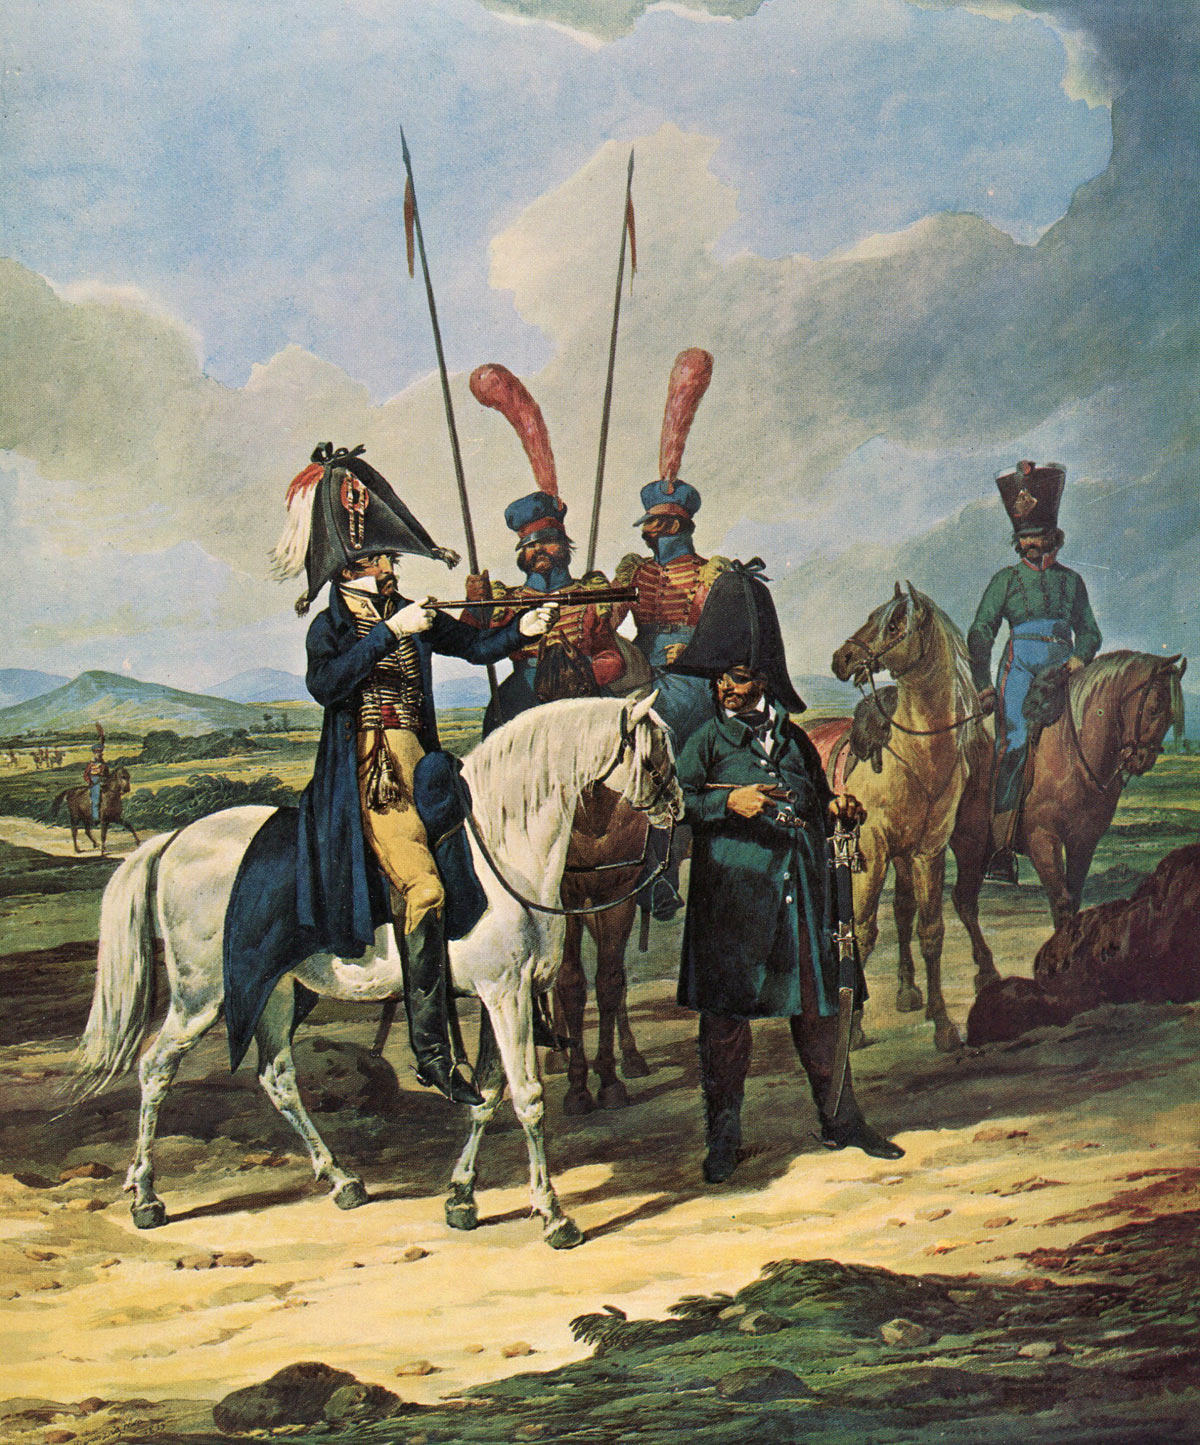 Spanish General and his staff: Battle of Barossa or Chiclana fought on 5th March 1811 in the Peninsular War: picture by Denis Dighton